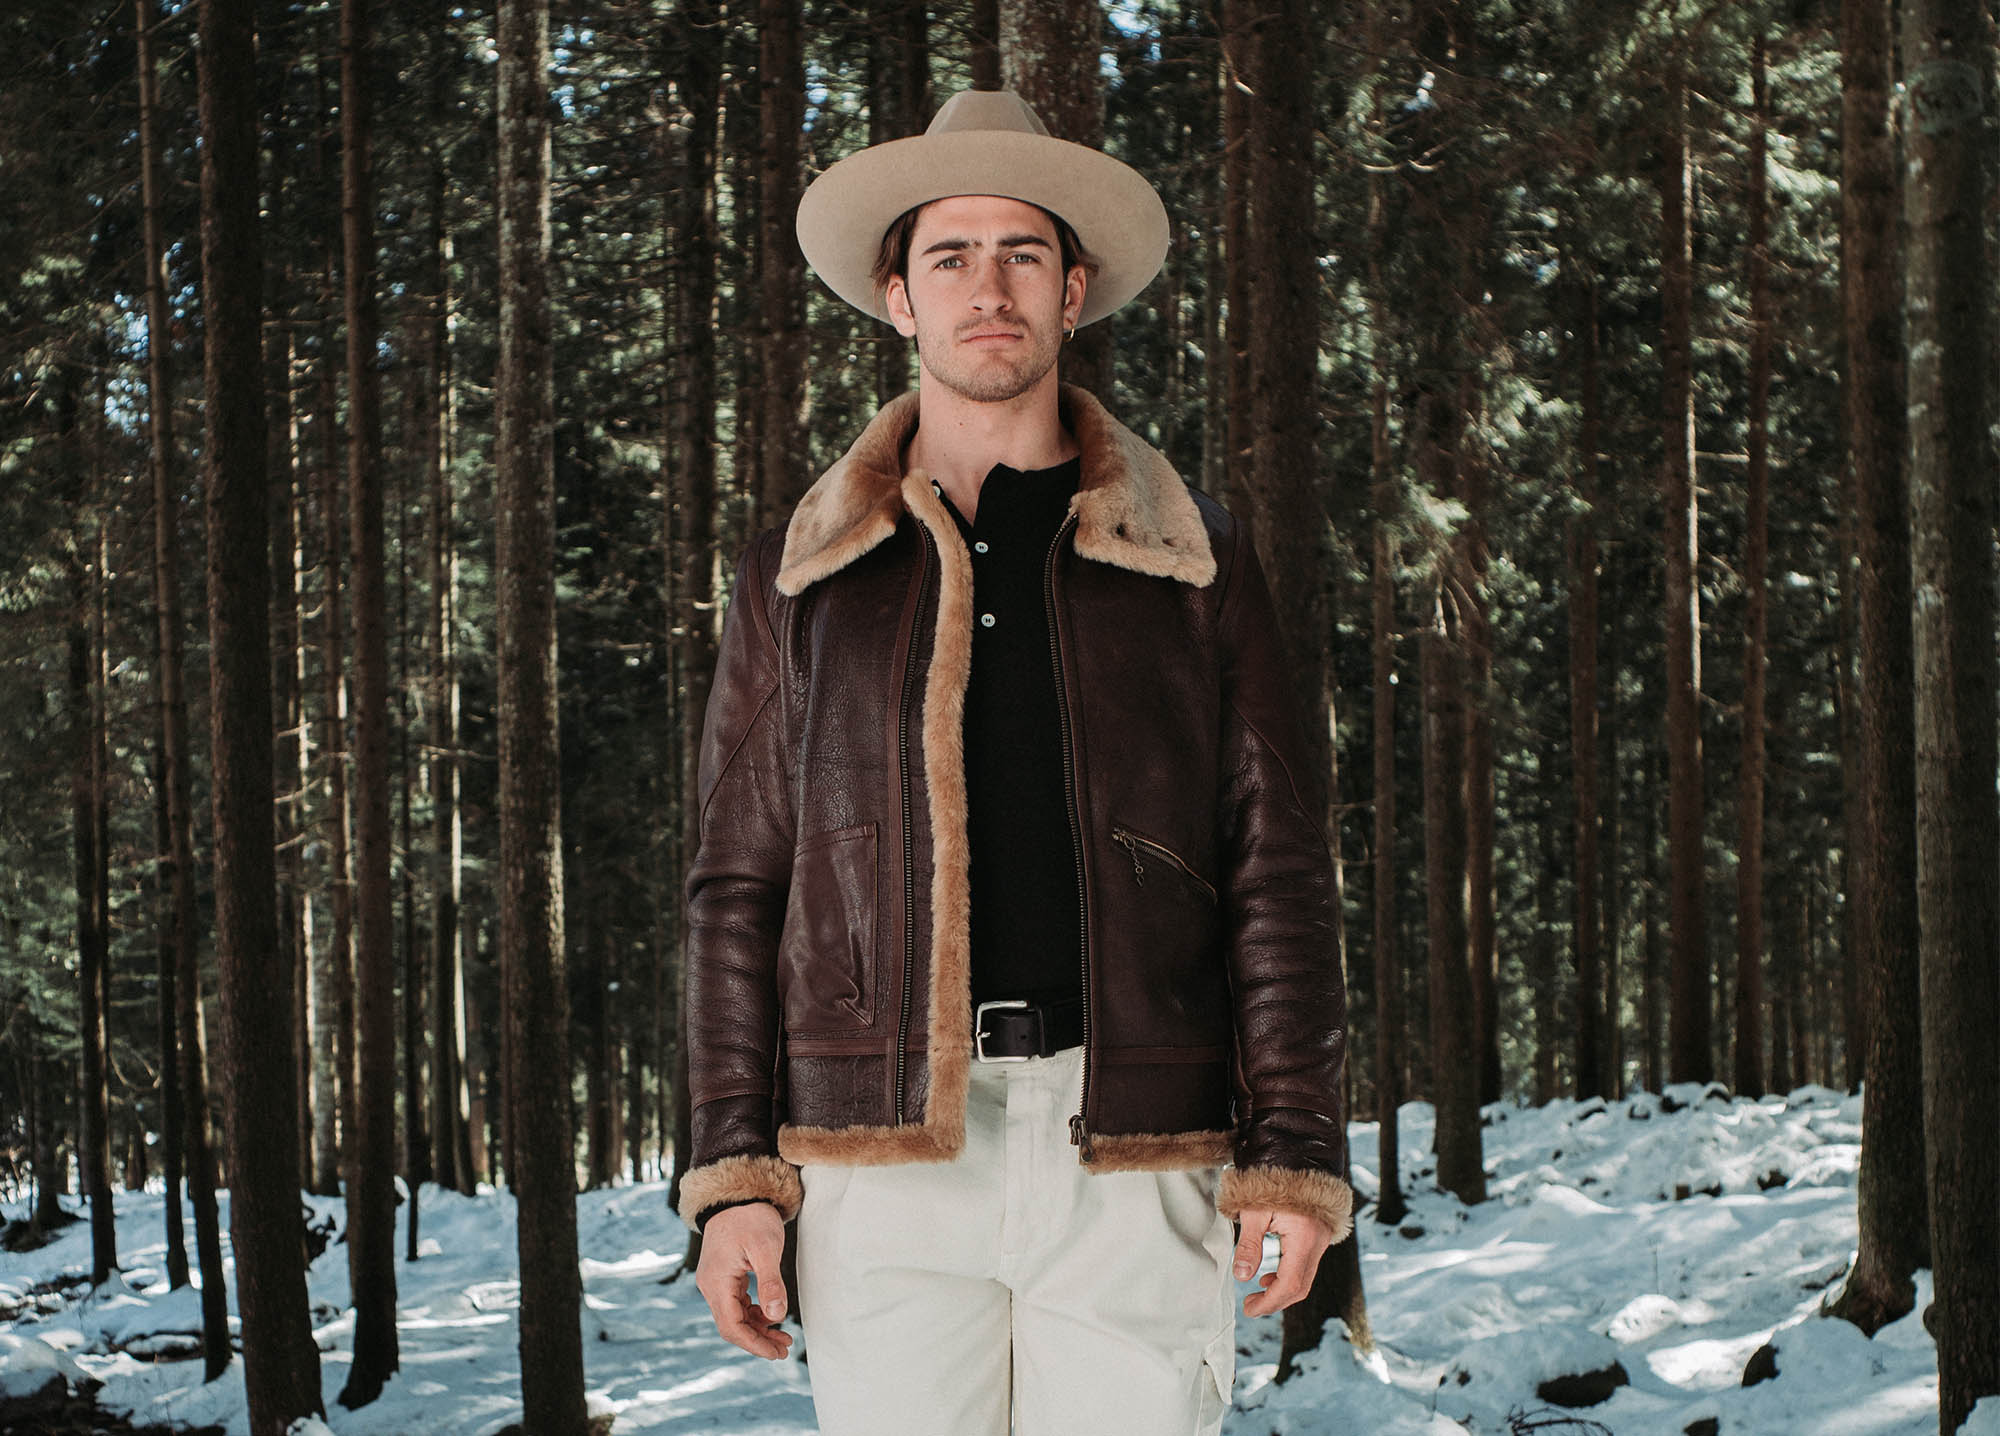 shangri-la-heritage-aviatore-b-3-seal-brown-shearling-sheepskin-jacket-lifestyle-full-width-3